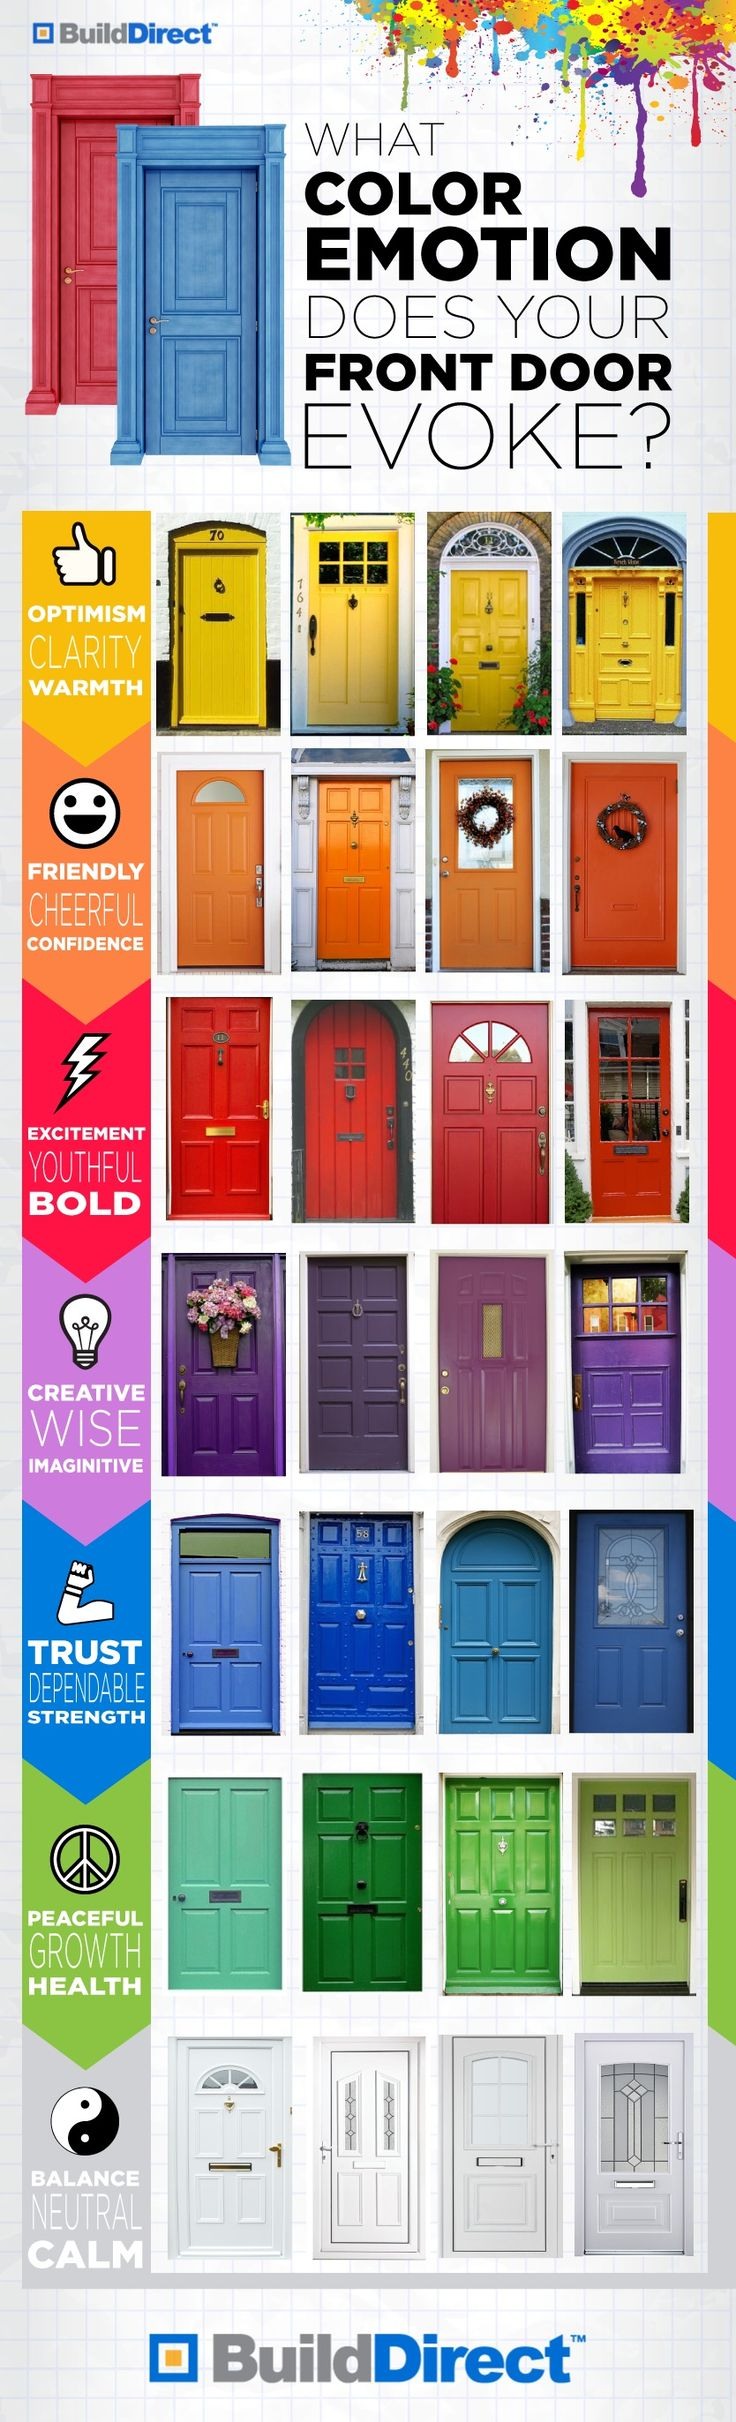 What Emotion Does Your Door Evoke Doors and Color: What Emotion Does Yours Evoke? Wish a black door would keep the solicitors away. LOL